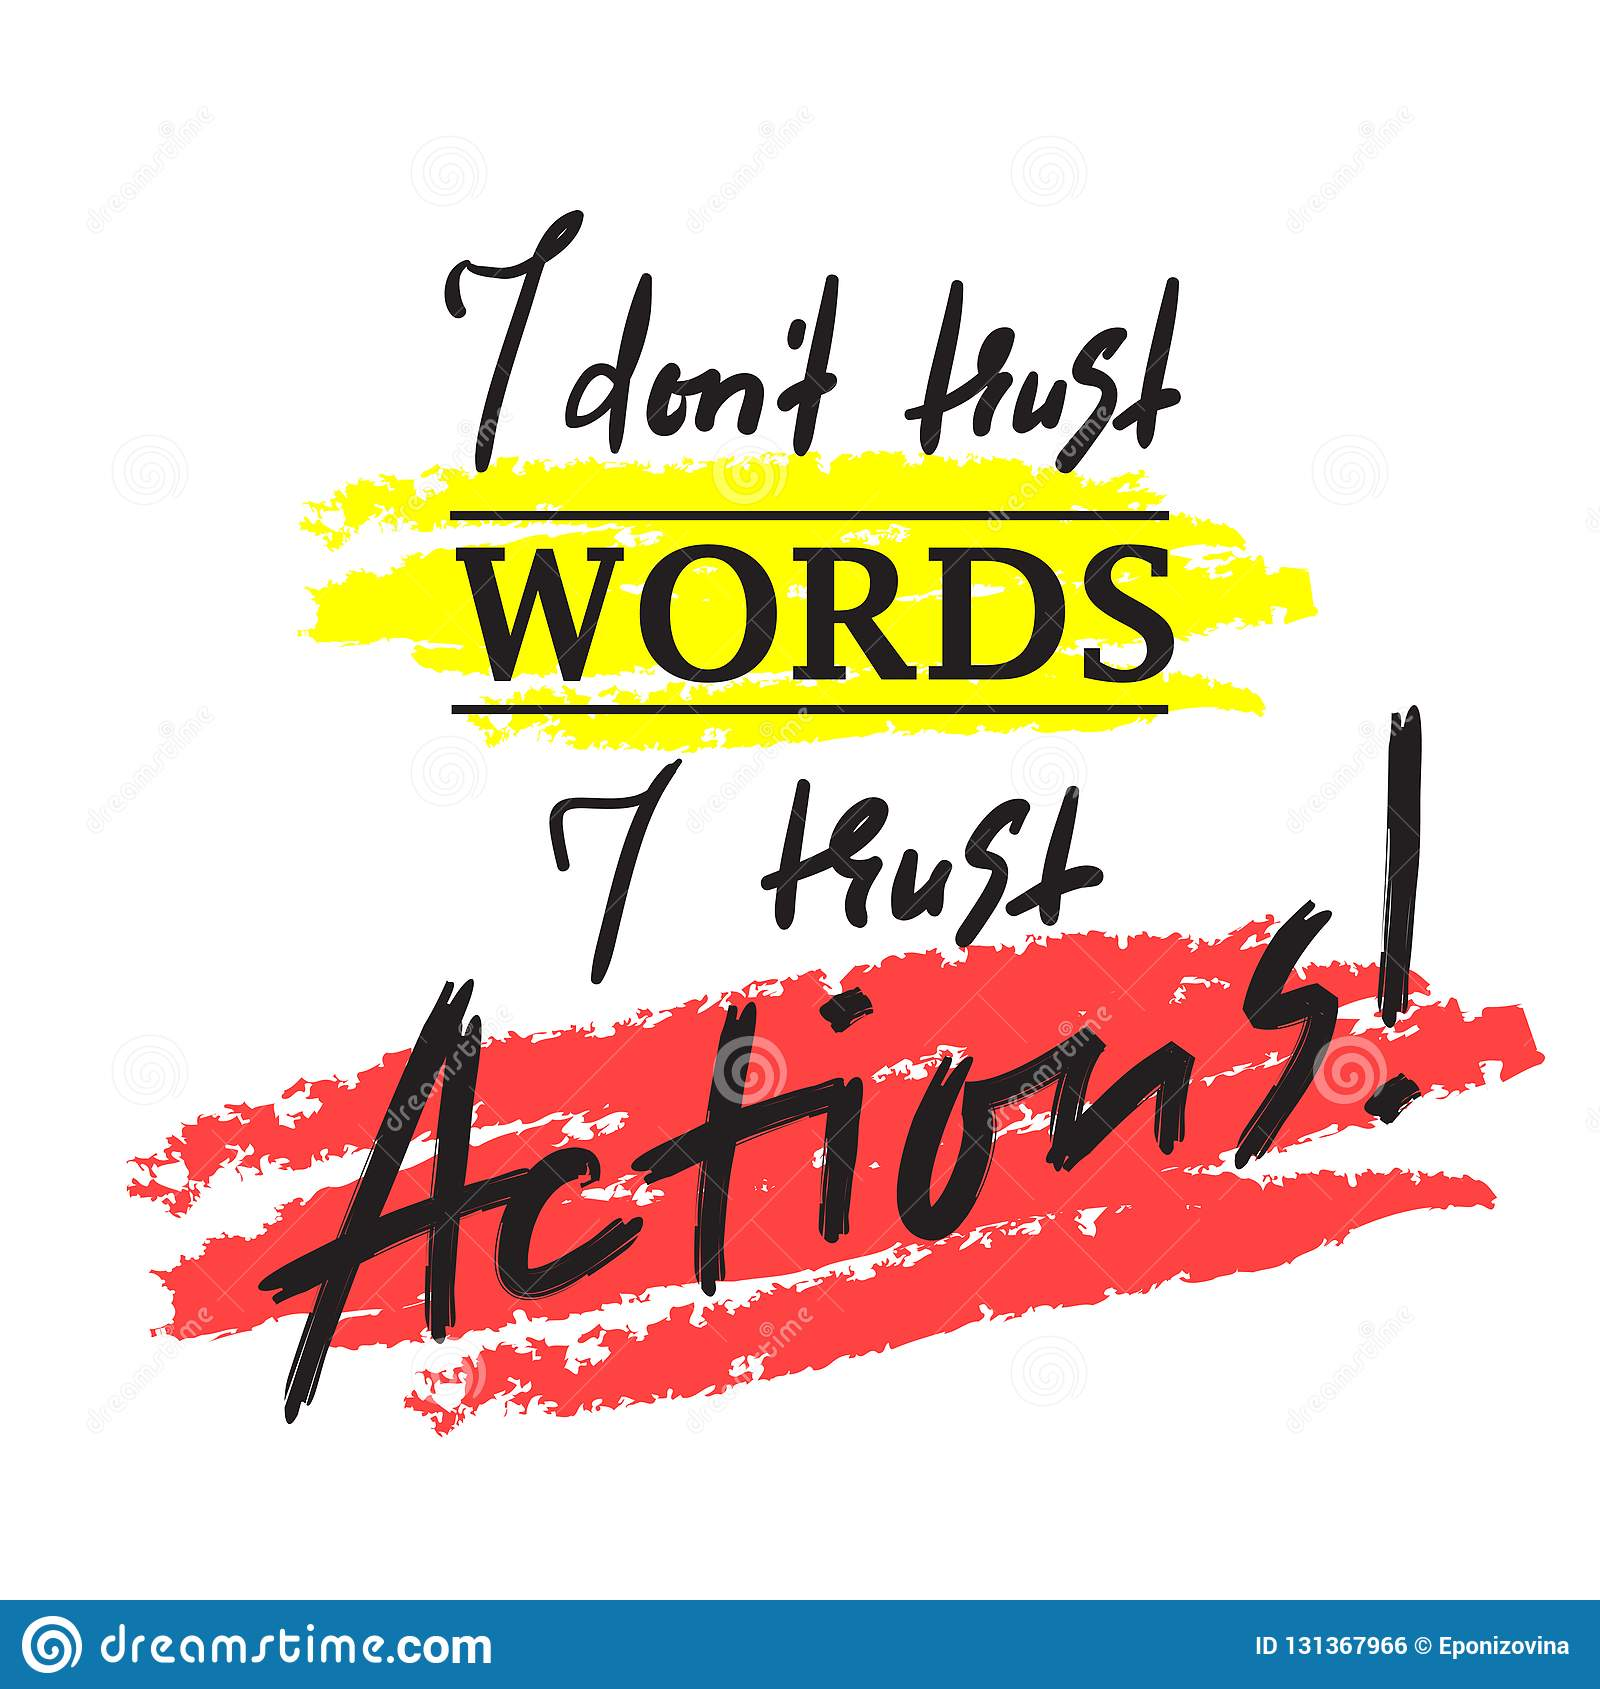 I dont trust Words I trust Actions - inspire and motivational quote. Print for inspirational poster, t-shirt, bag, cups, card, fl